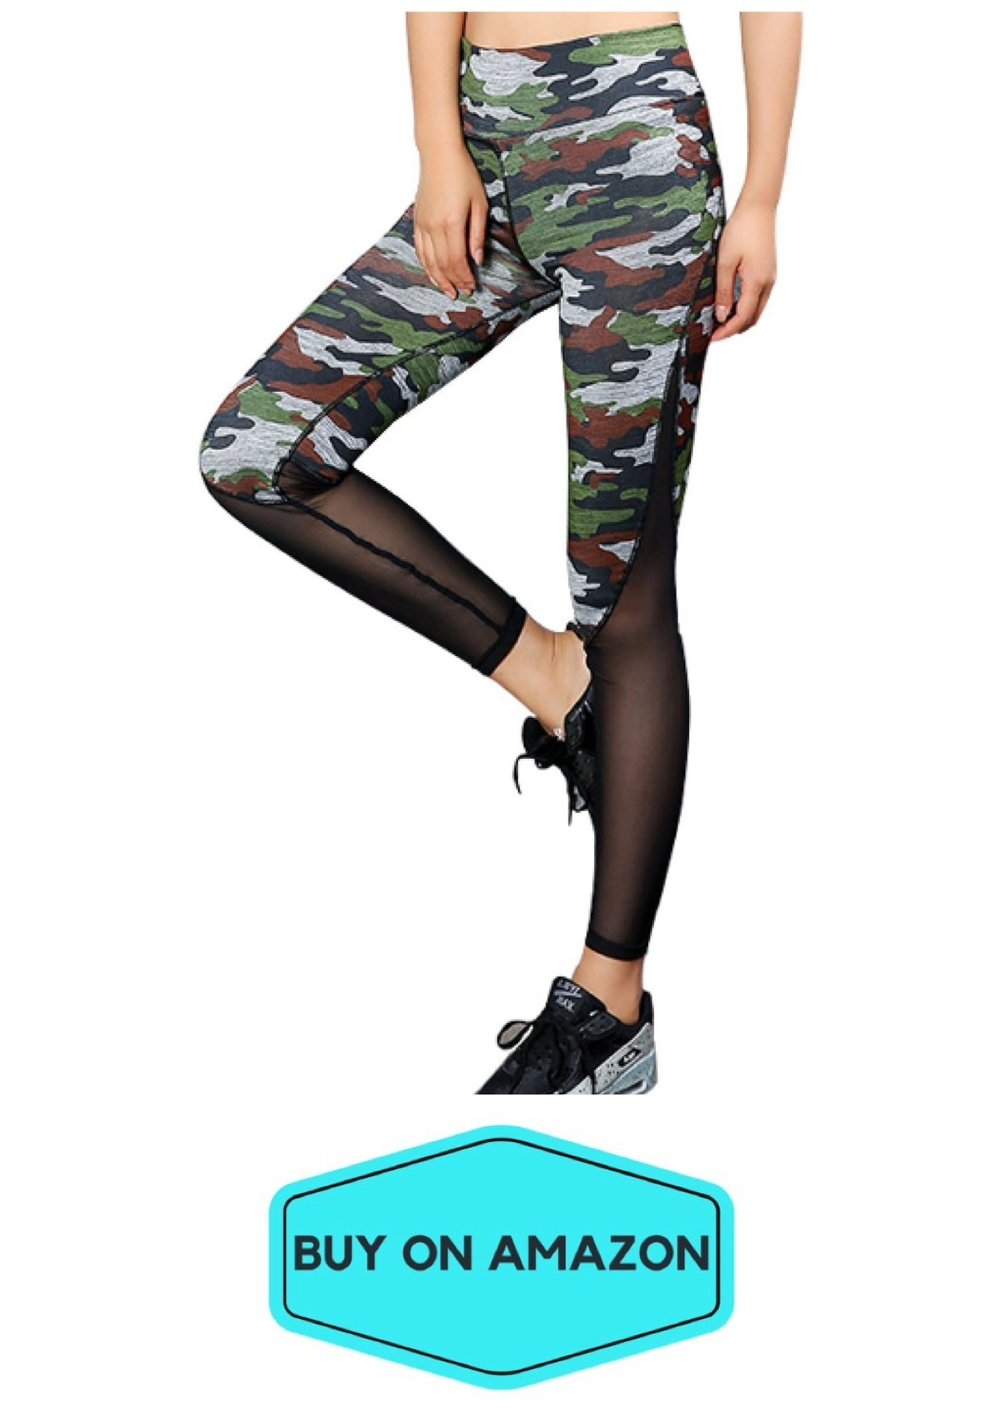 Camo/Mesh Leggings